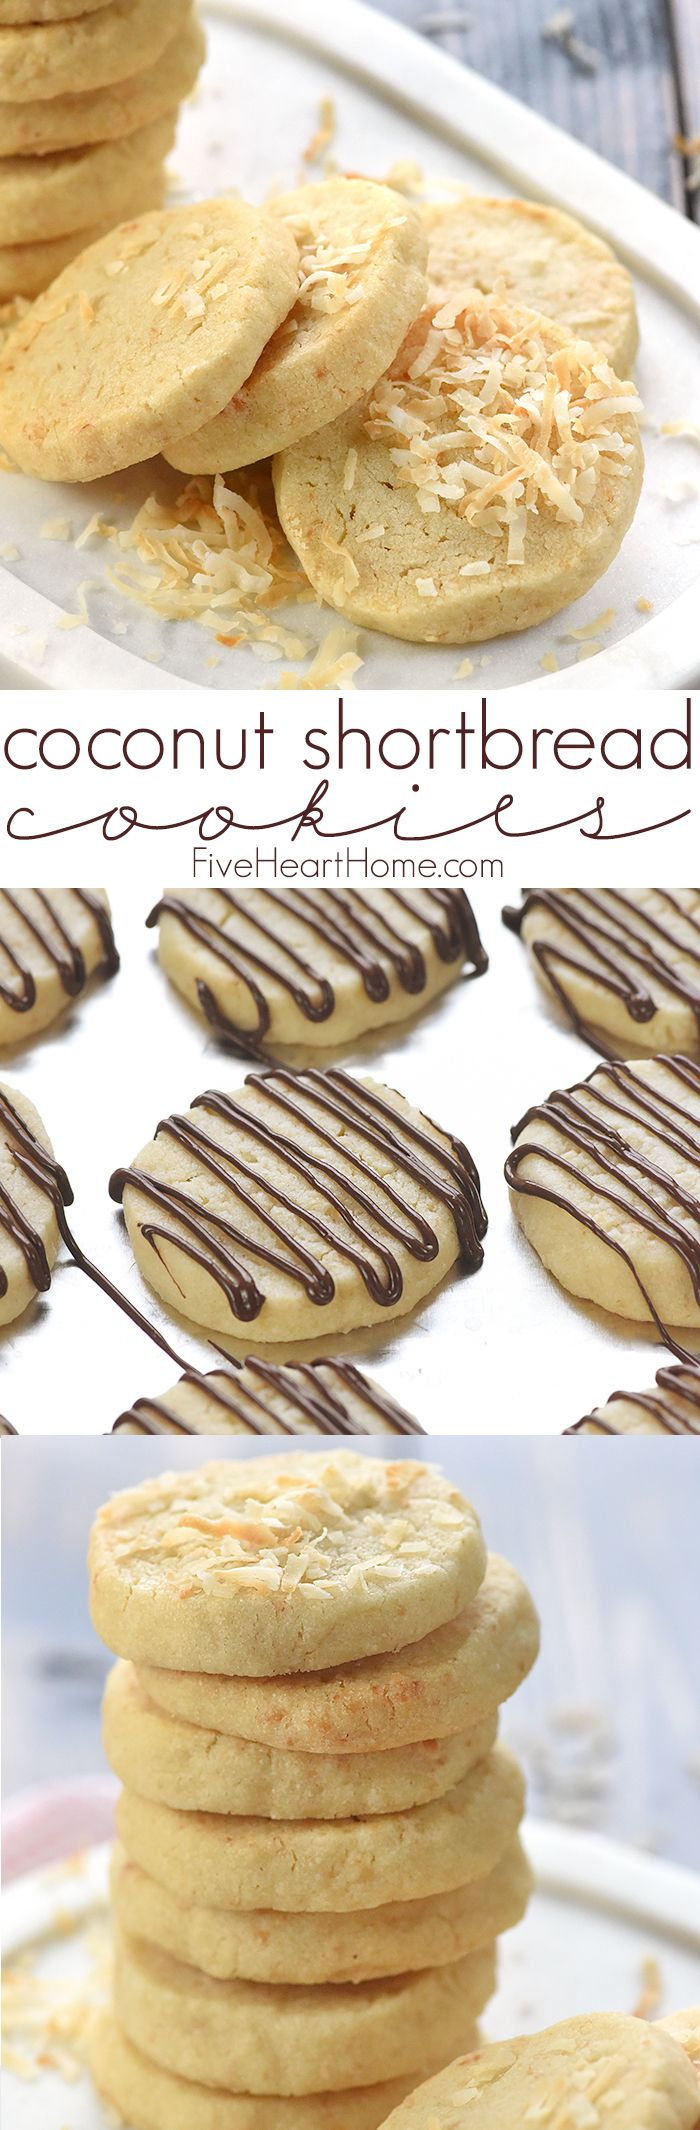 Easy Coconut Shortbread Cookies ~ tender, buttery shortbread is loaded with toasted coconut in this delicious, addictive, easy-to-make recipe! | FiveHeartHome.com